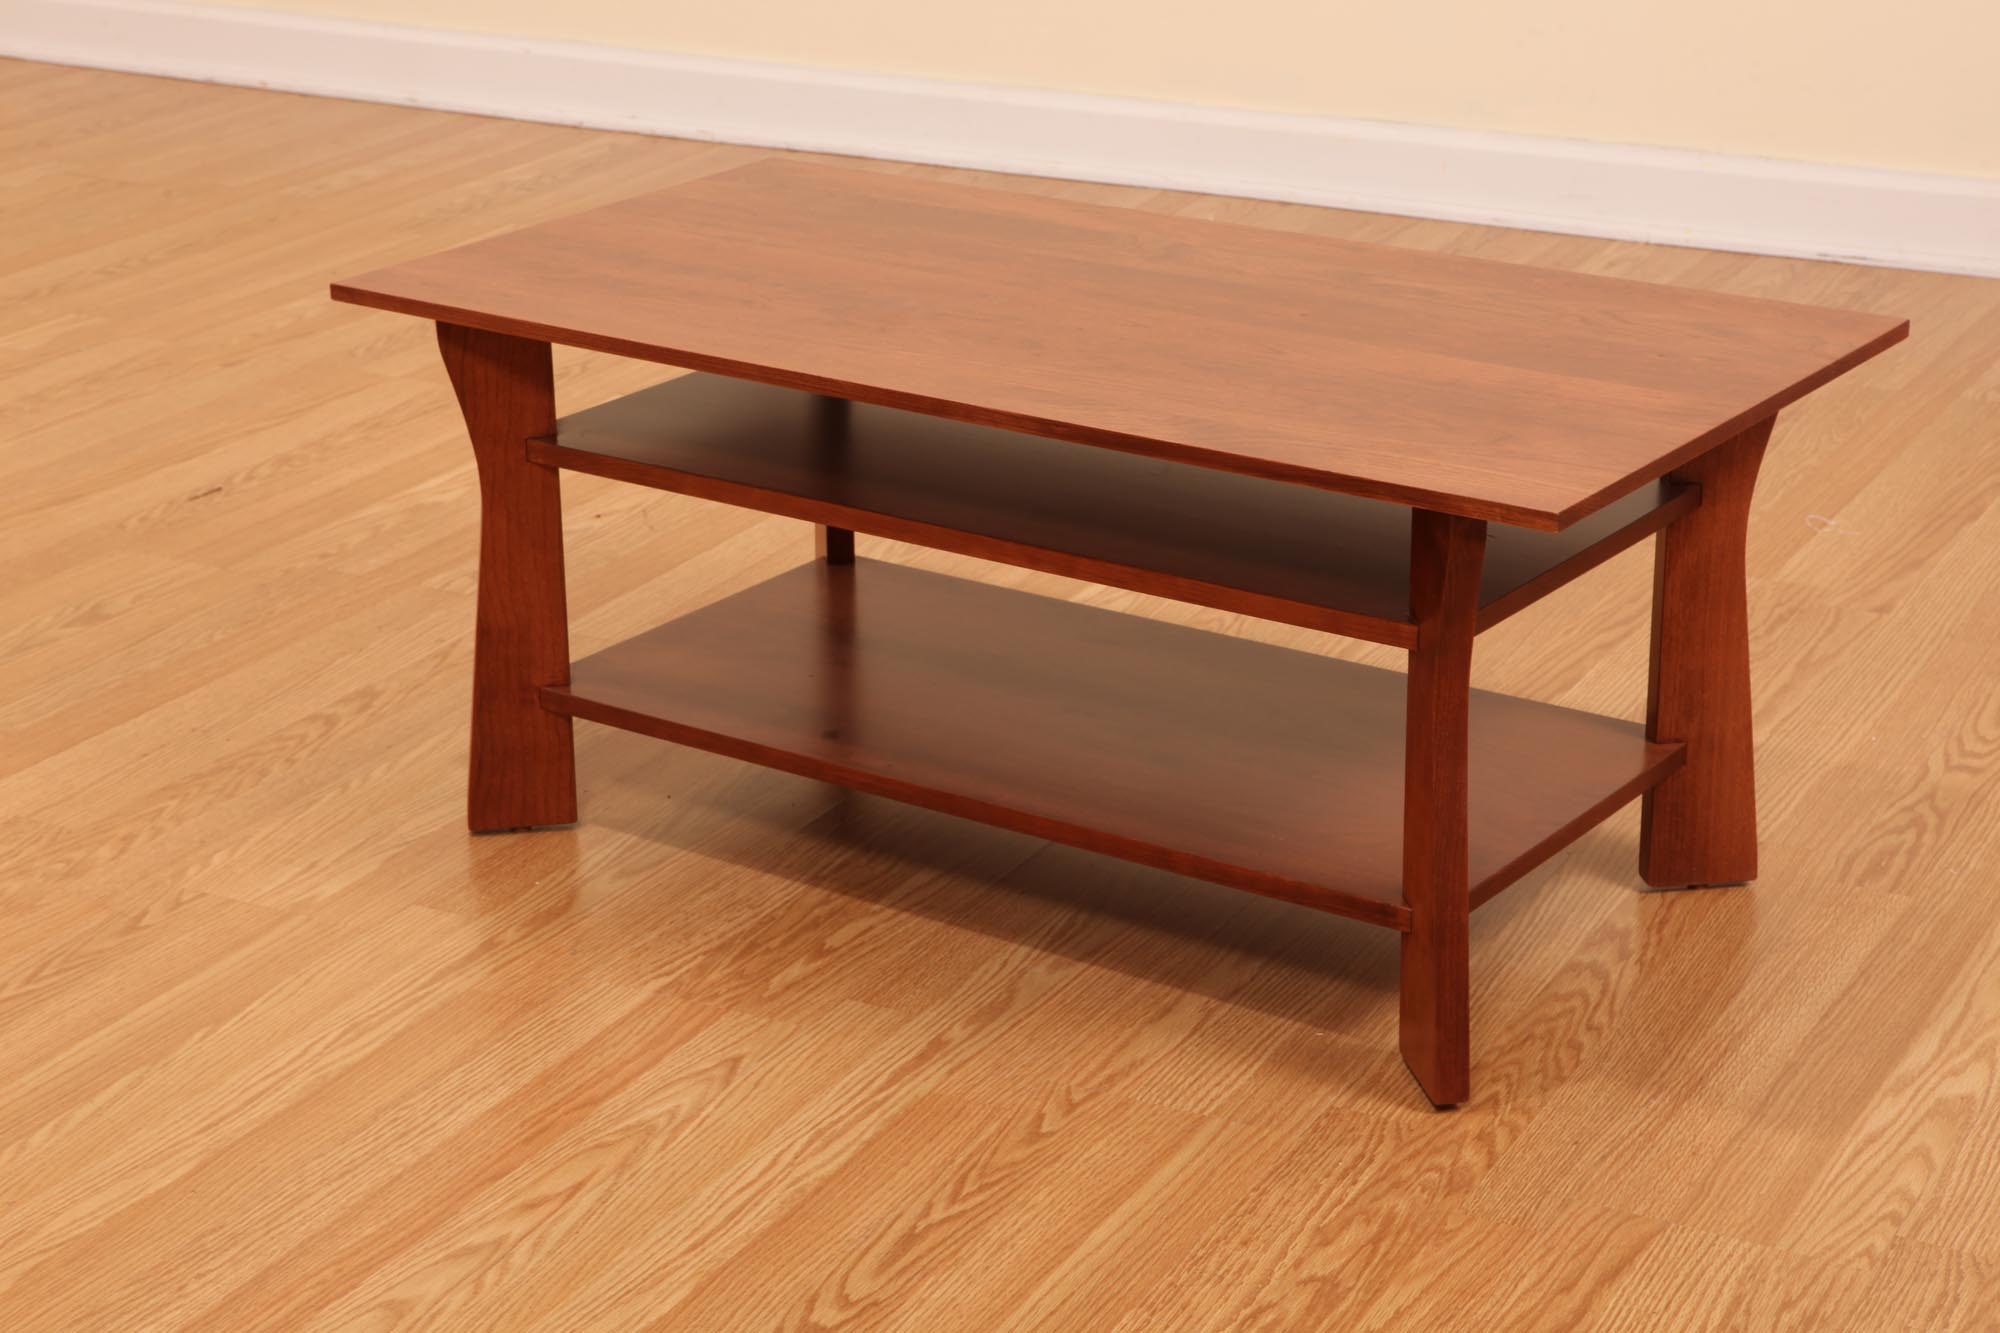 Cheap Cherry Wood Coffee Table With Glass Top and Storage